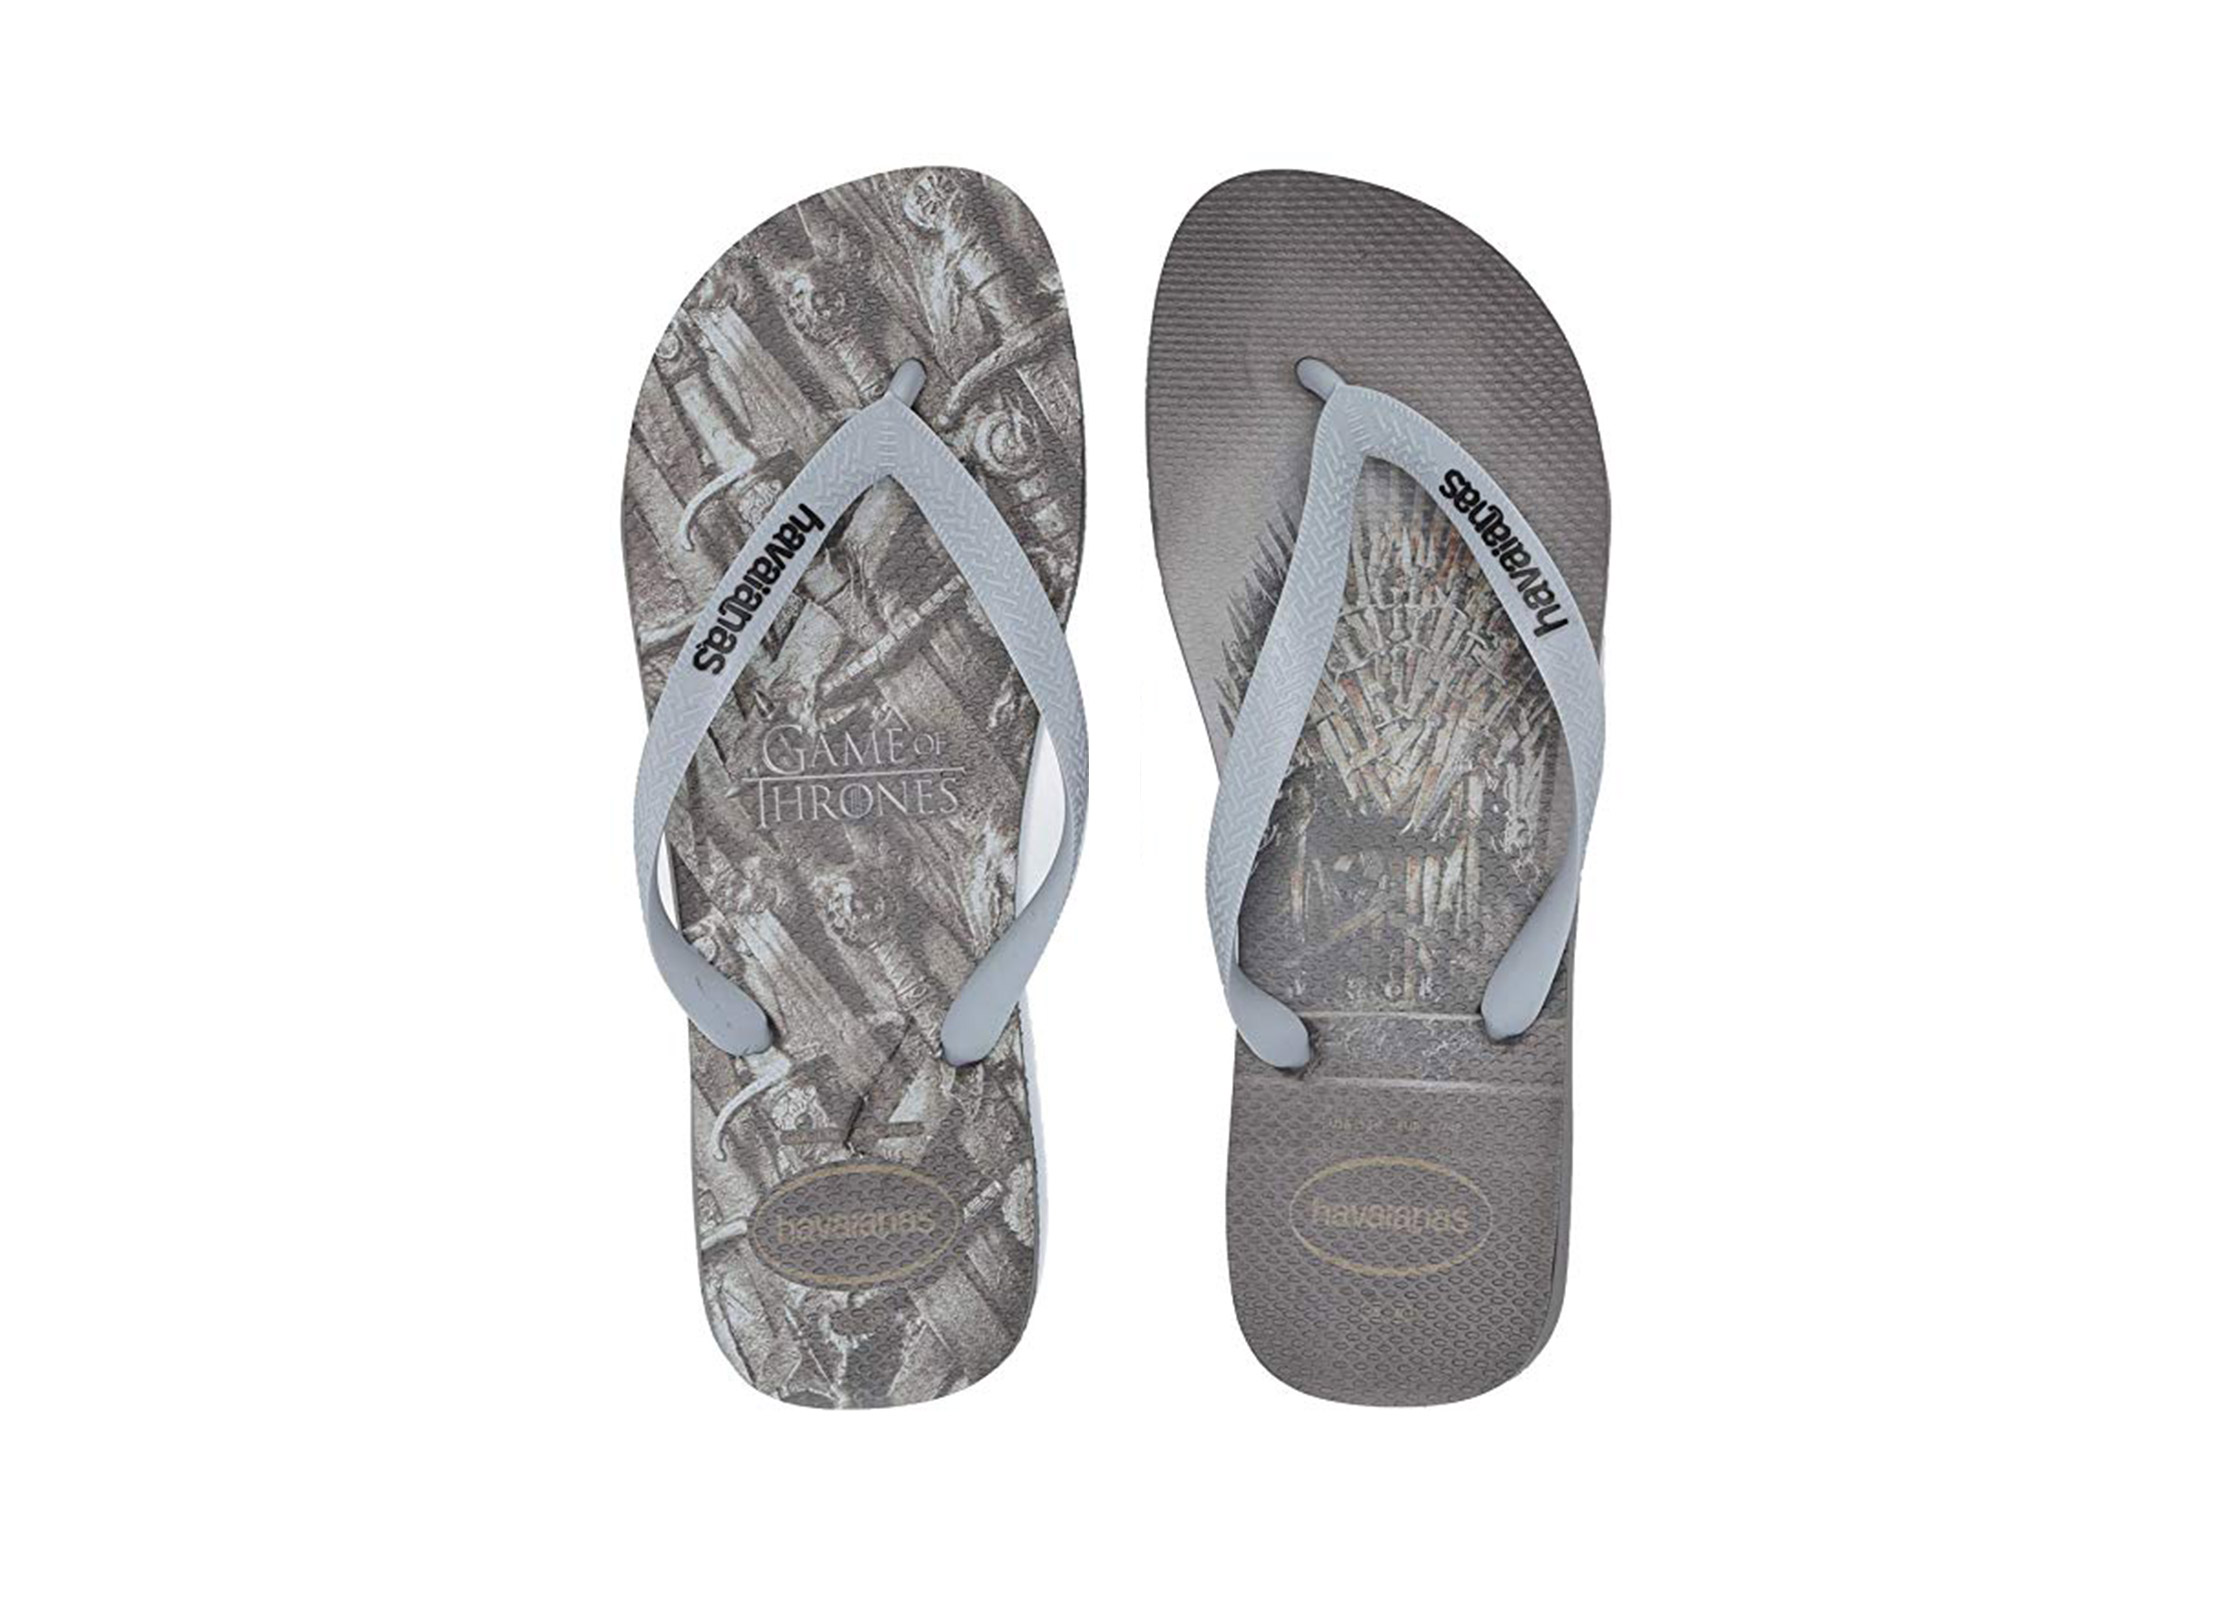 HAVAIANAS TOP GAME OF THRONES 4141854-5178 Ανθρακί